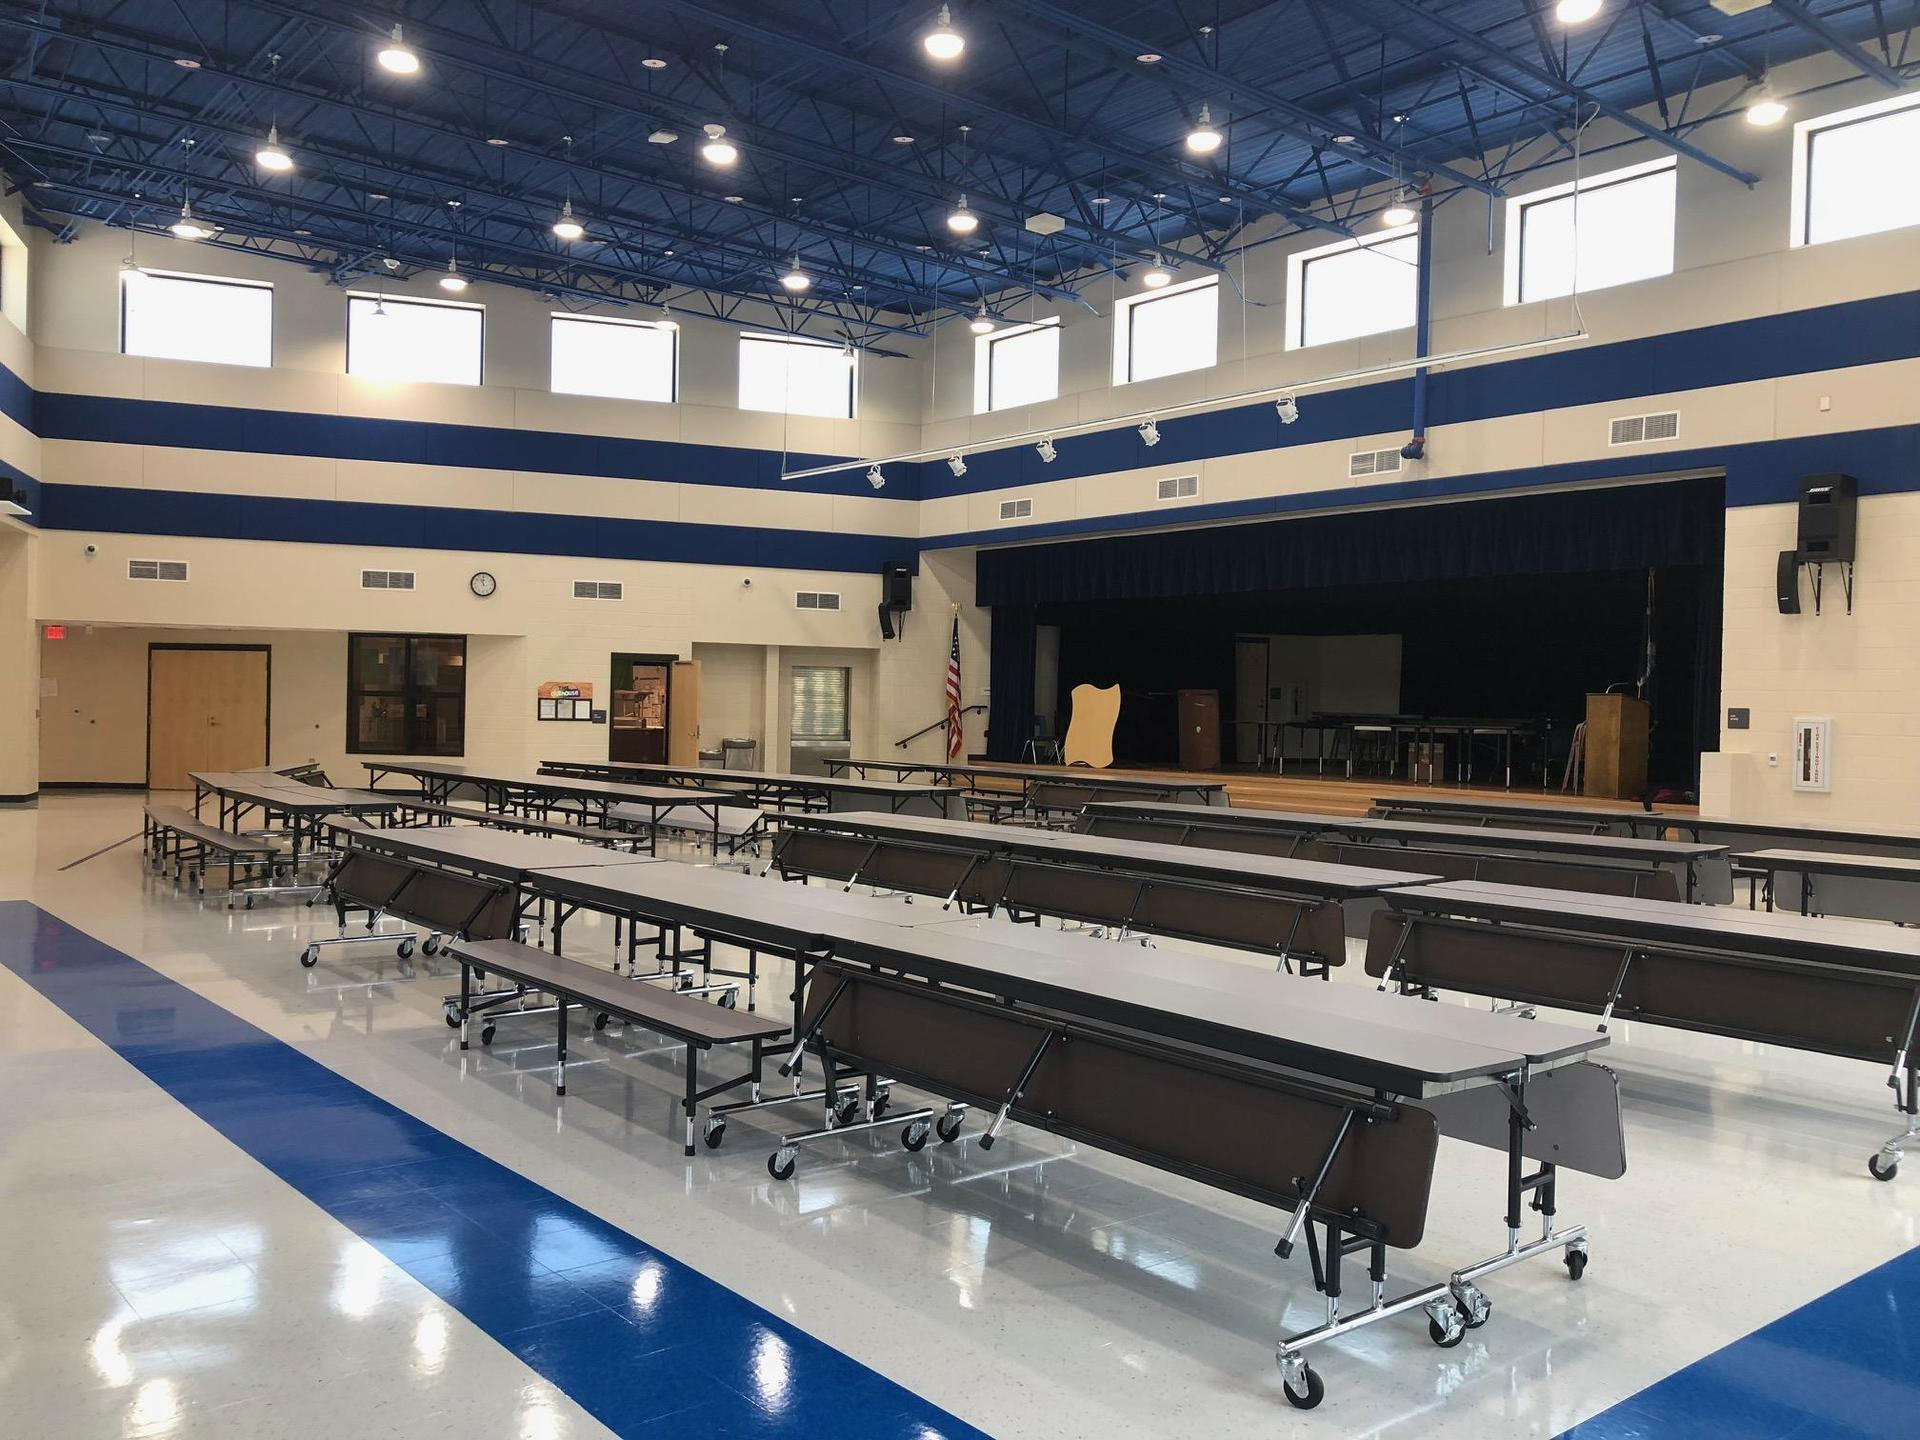 Interior view of new cafetorium at Congaree Elementary